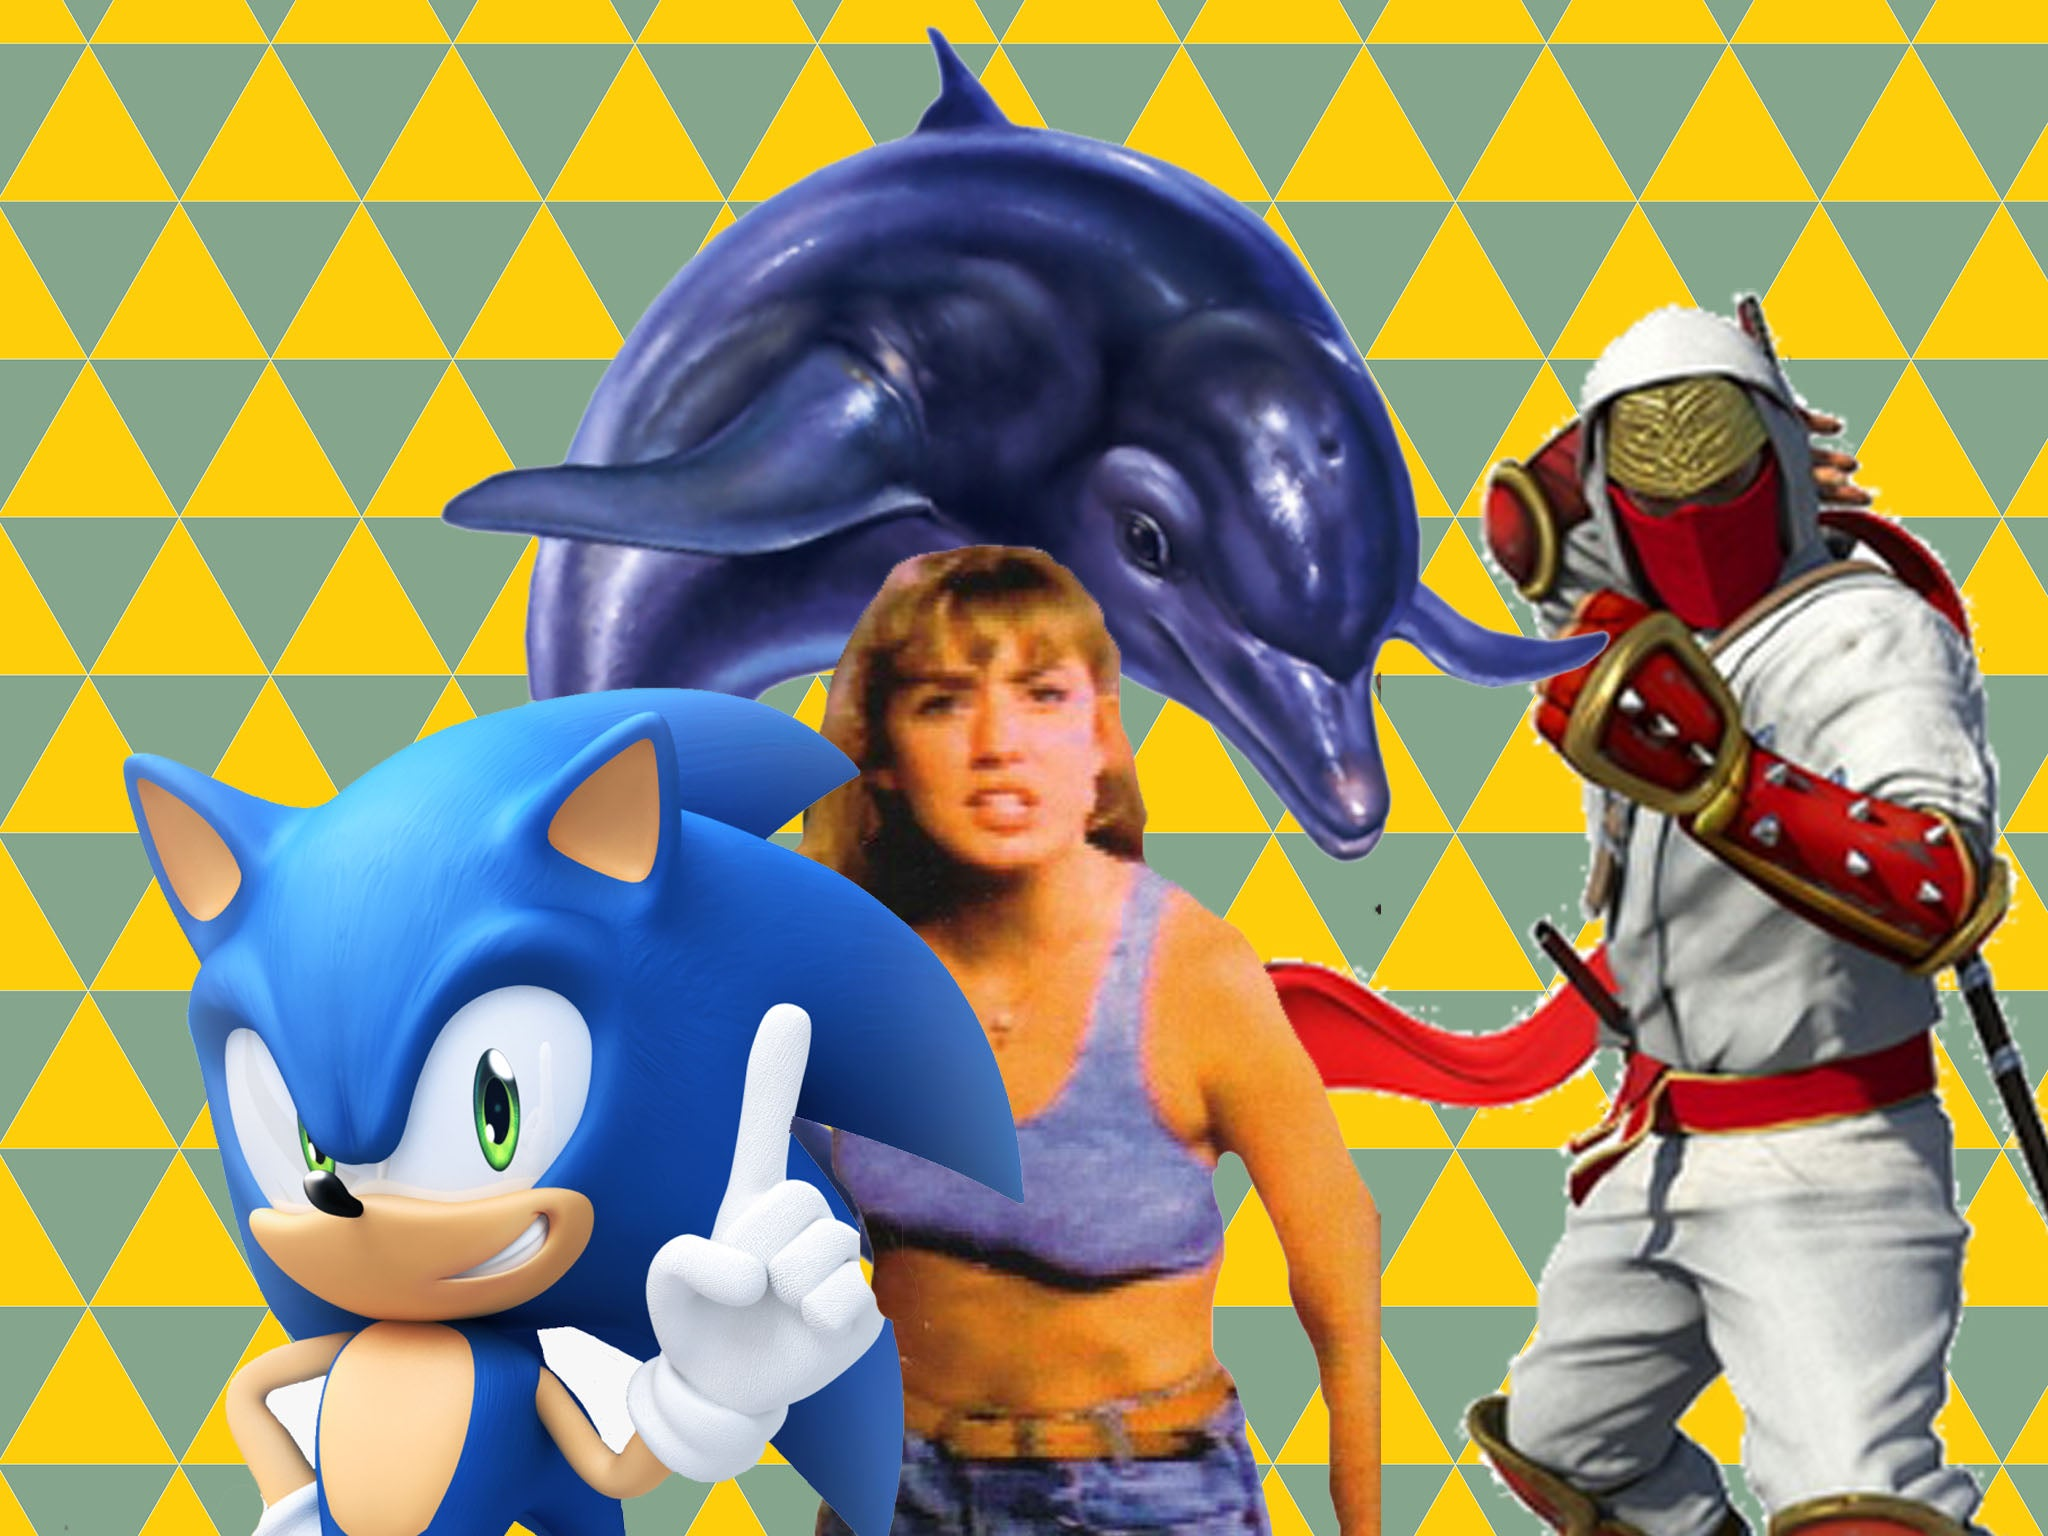 How Sega conquered the video games industry – and then threw it all away